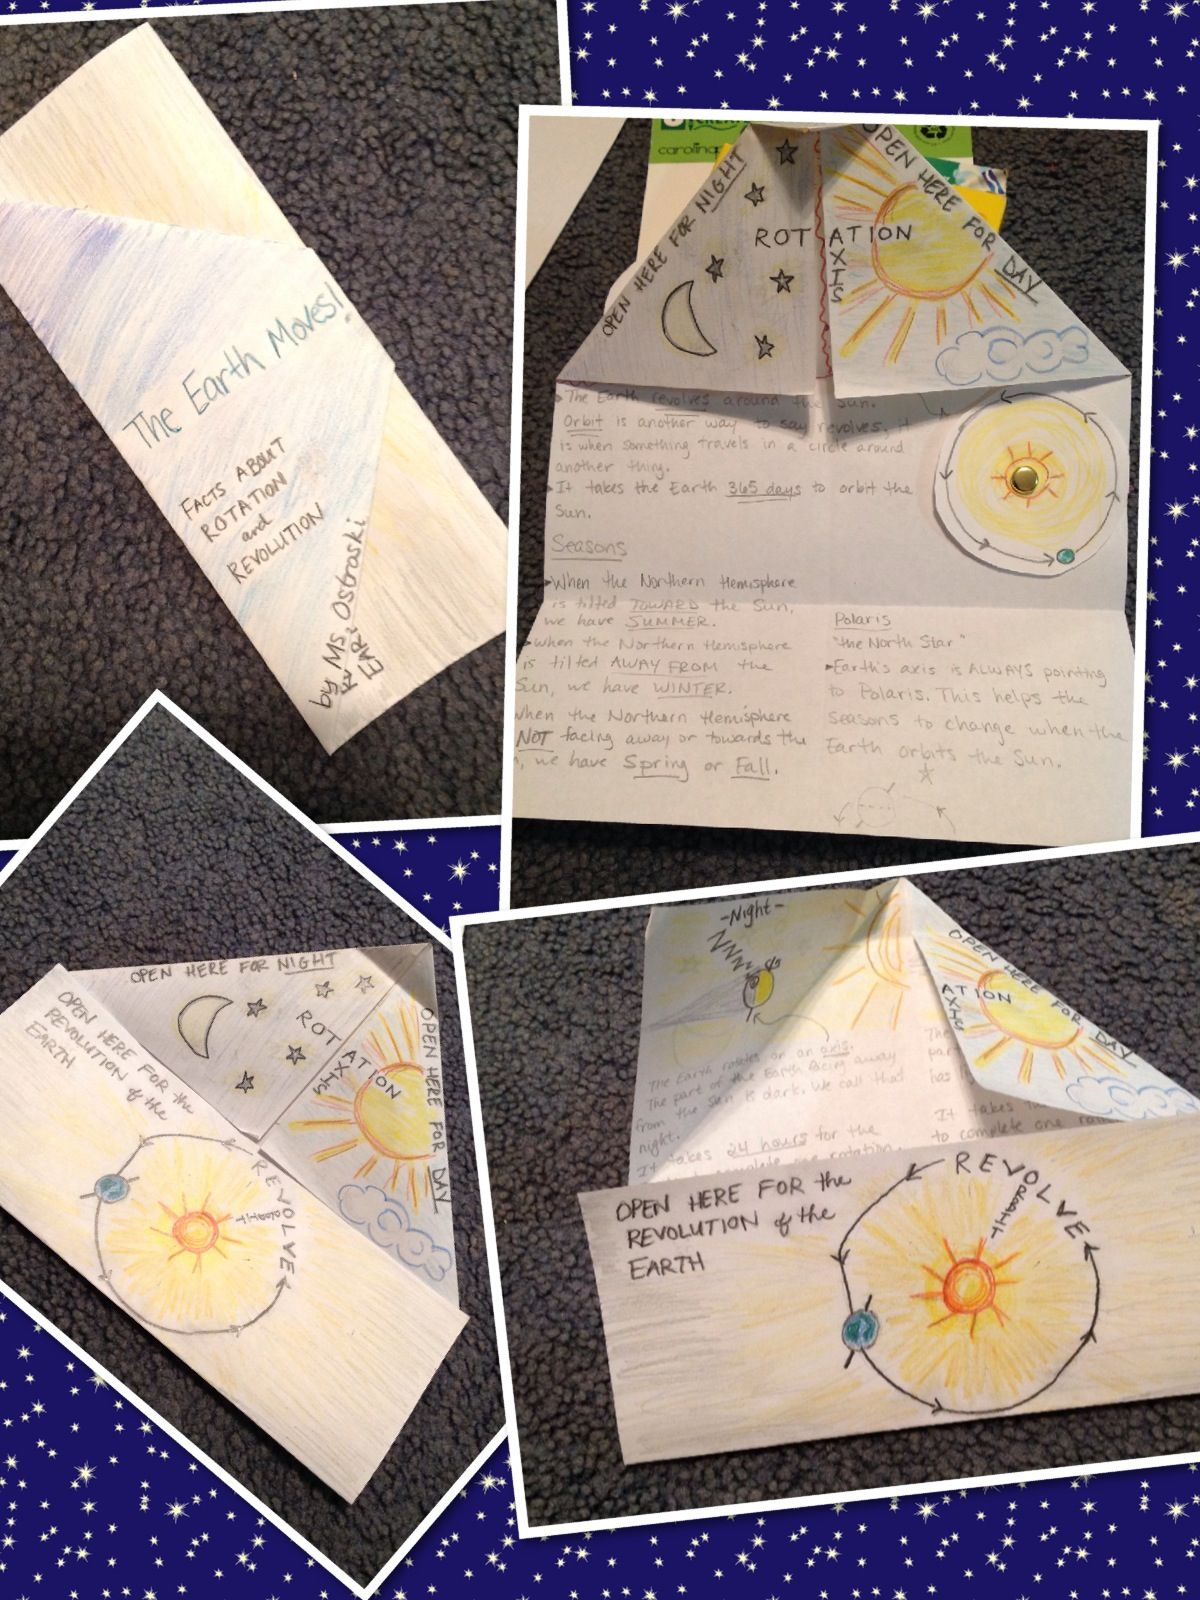 Rotation and Revolution foldable 4th grade science | Teaching